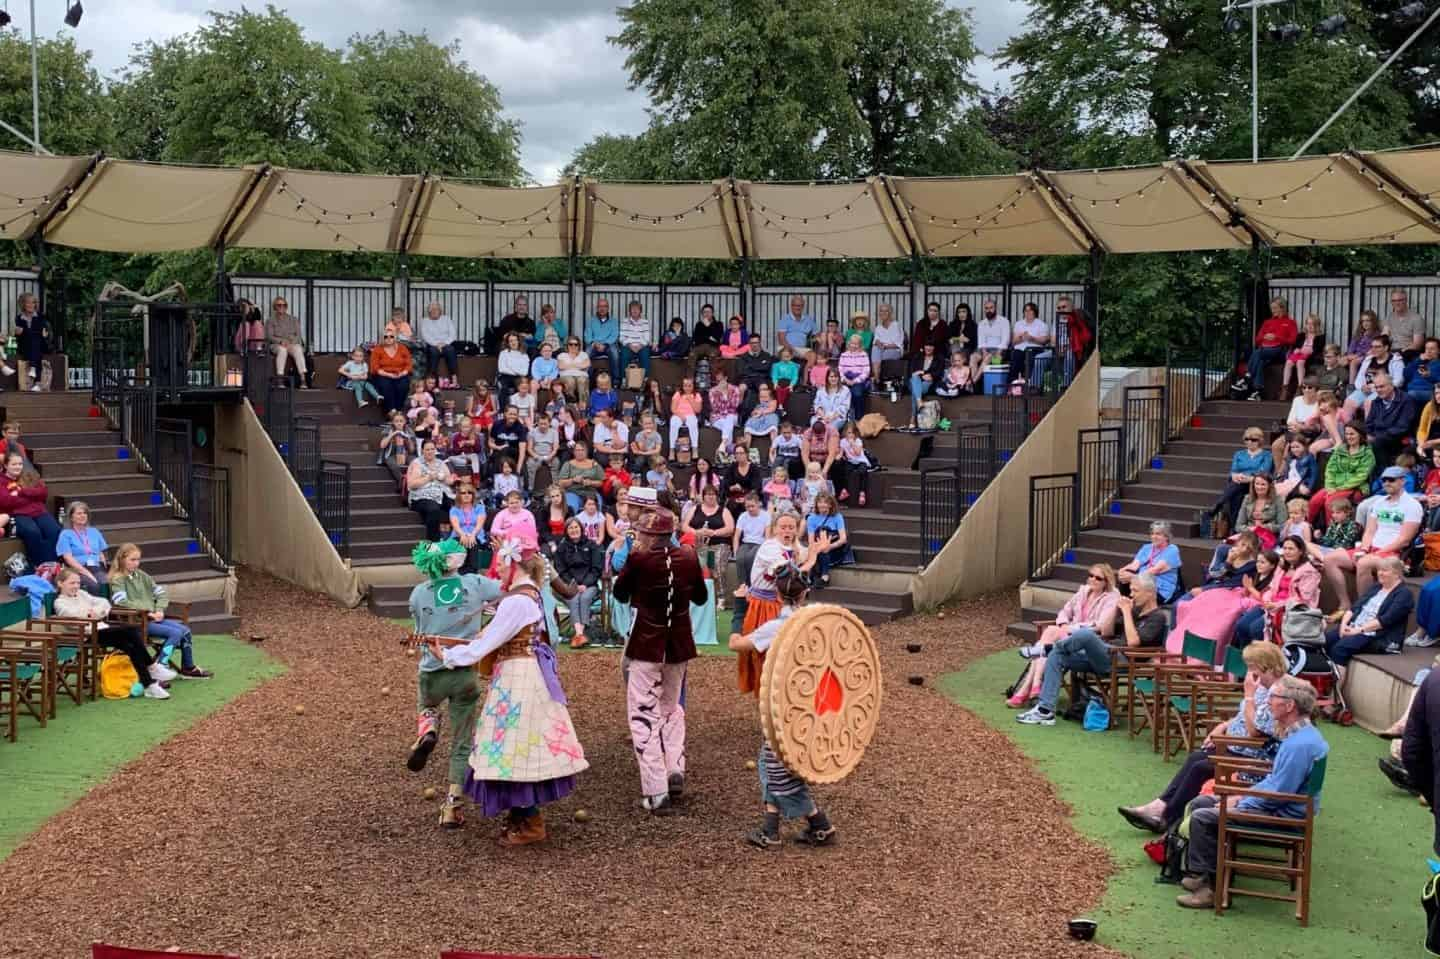 The Borrowers at Grosvenor Park Open Air Theatre in Chester